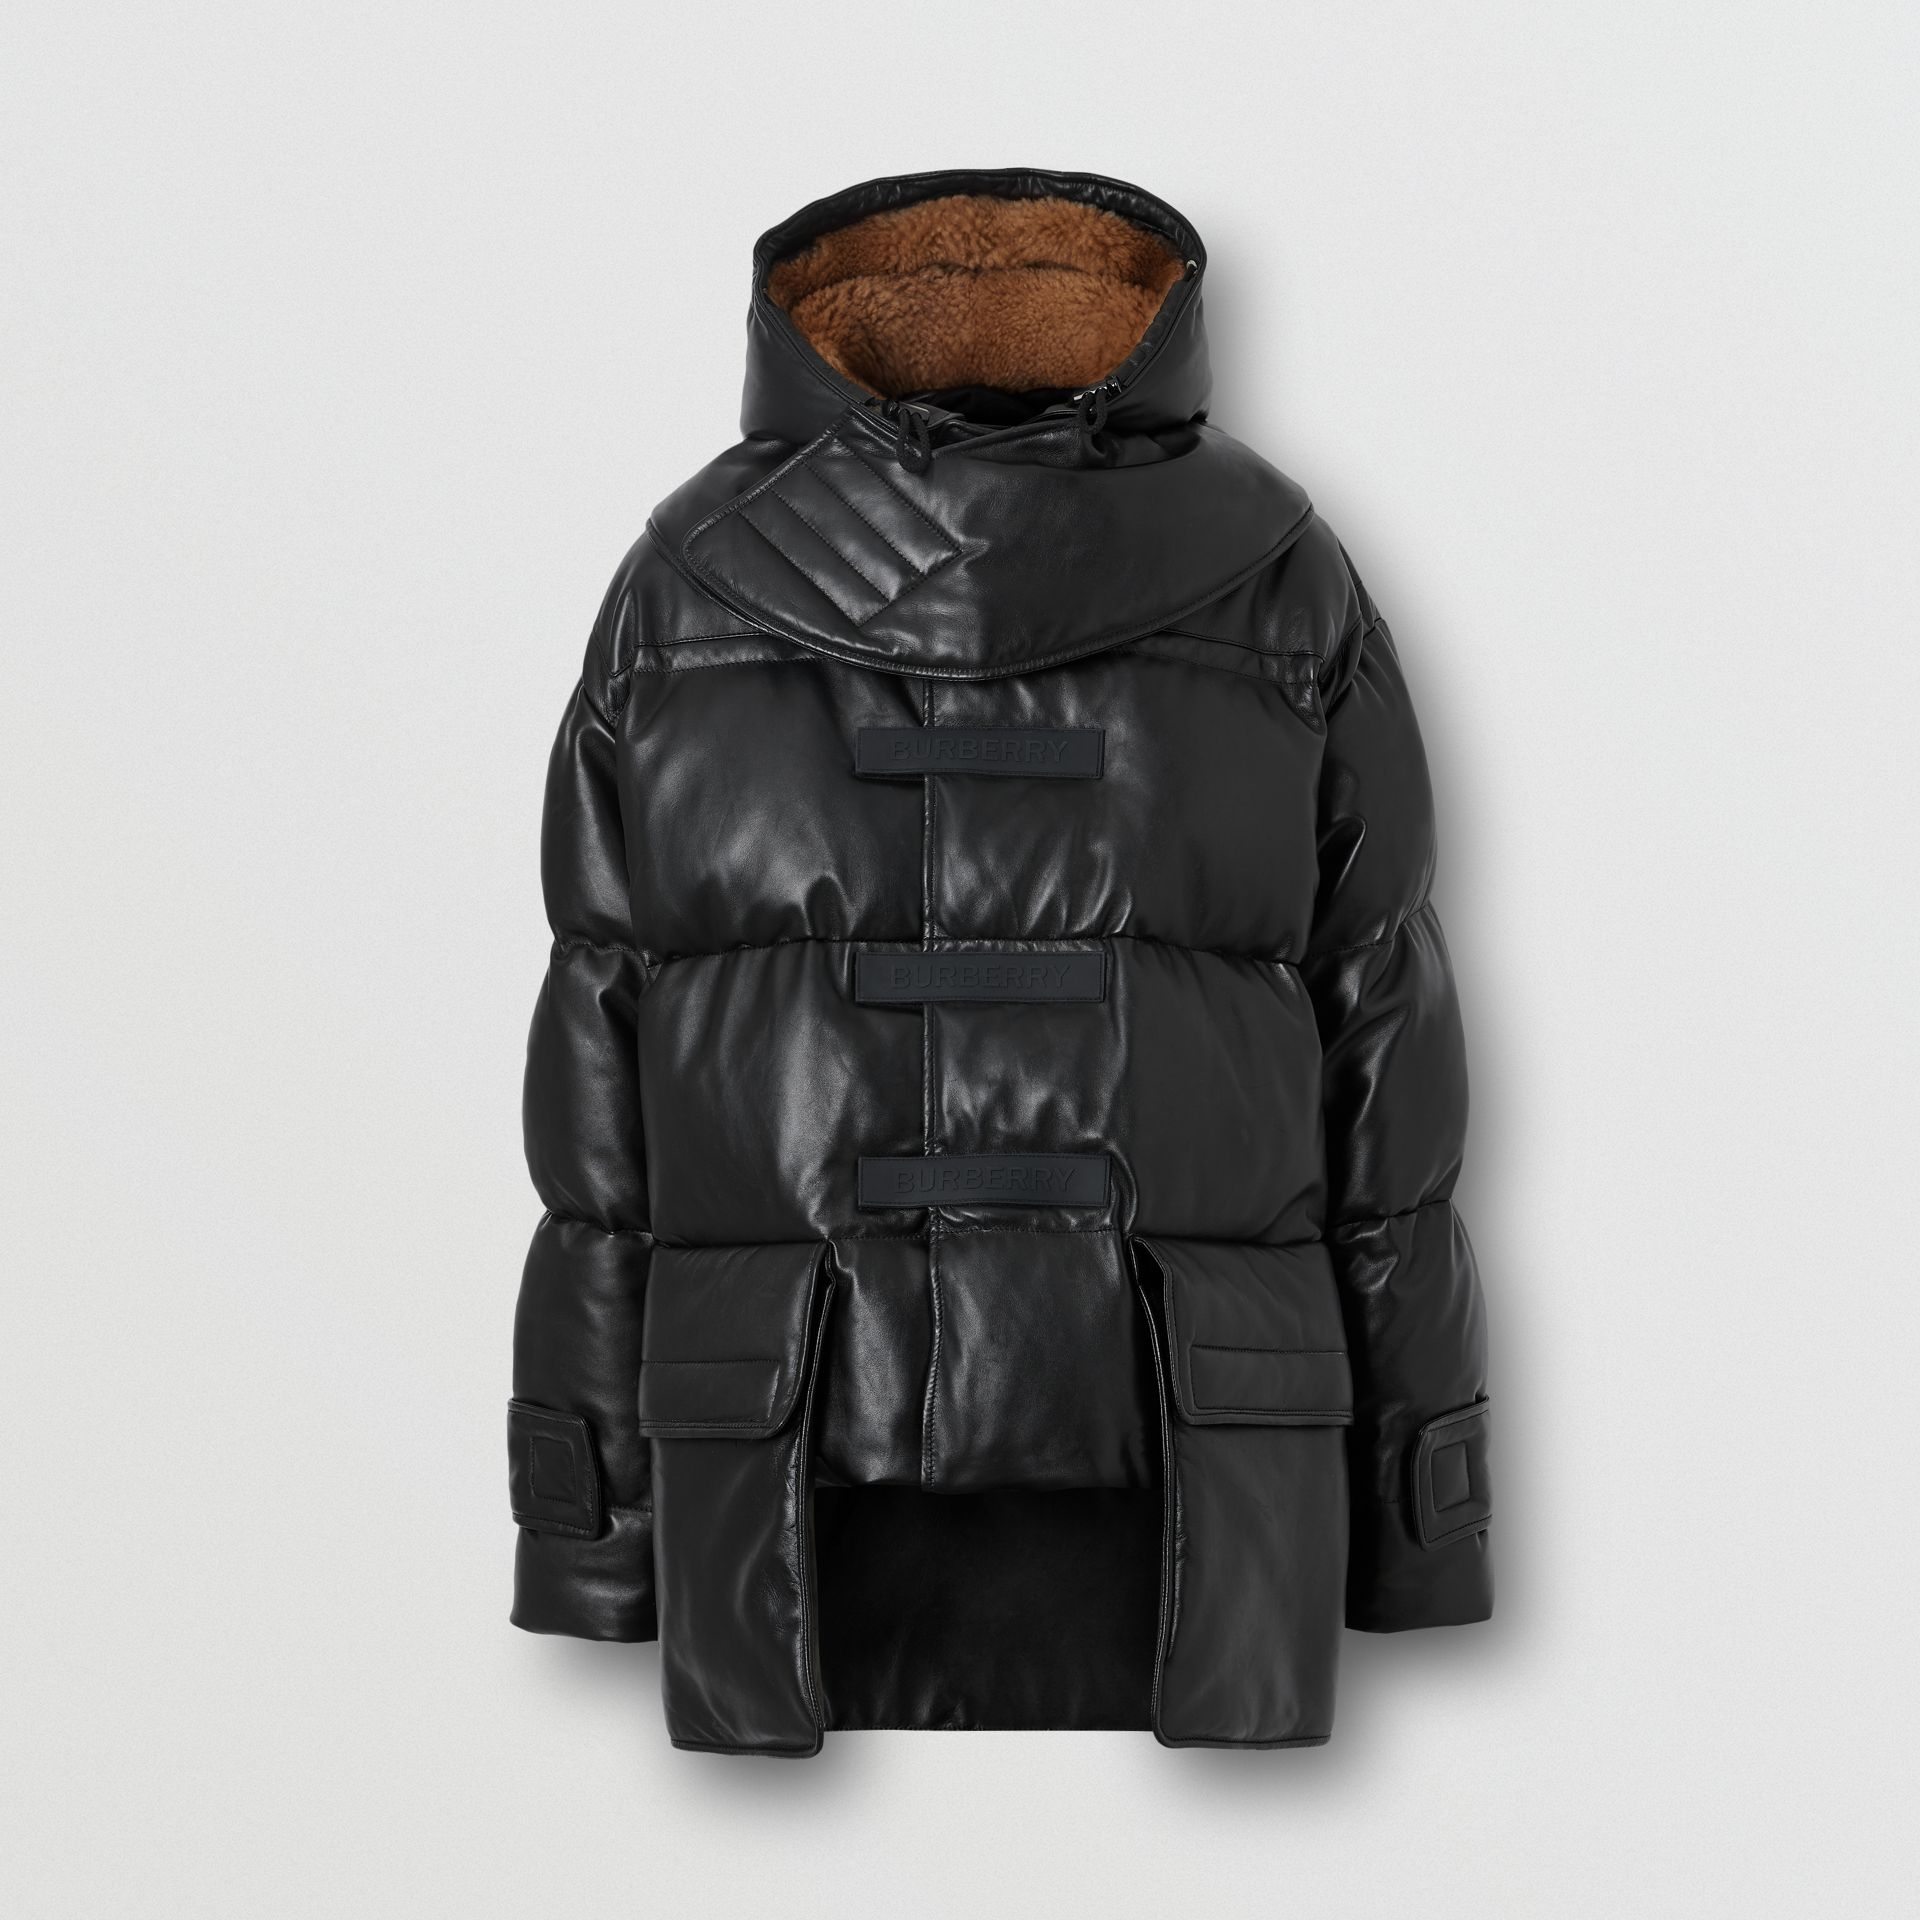 Plonge Lambskin Puffer Jacket in Black - Men | Burberry - gallery image 3